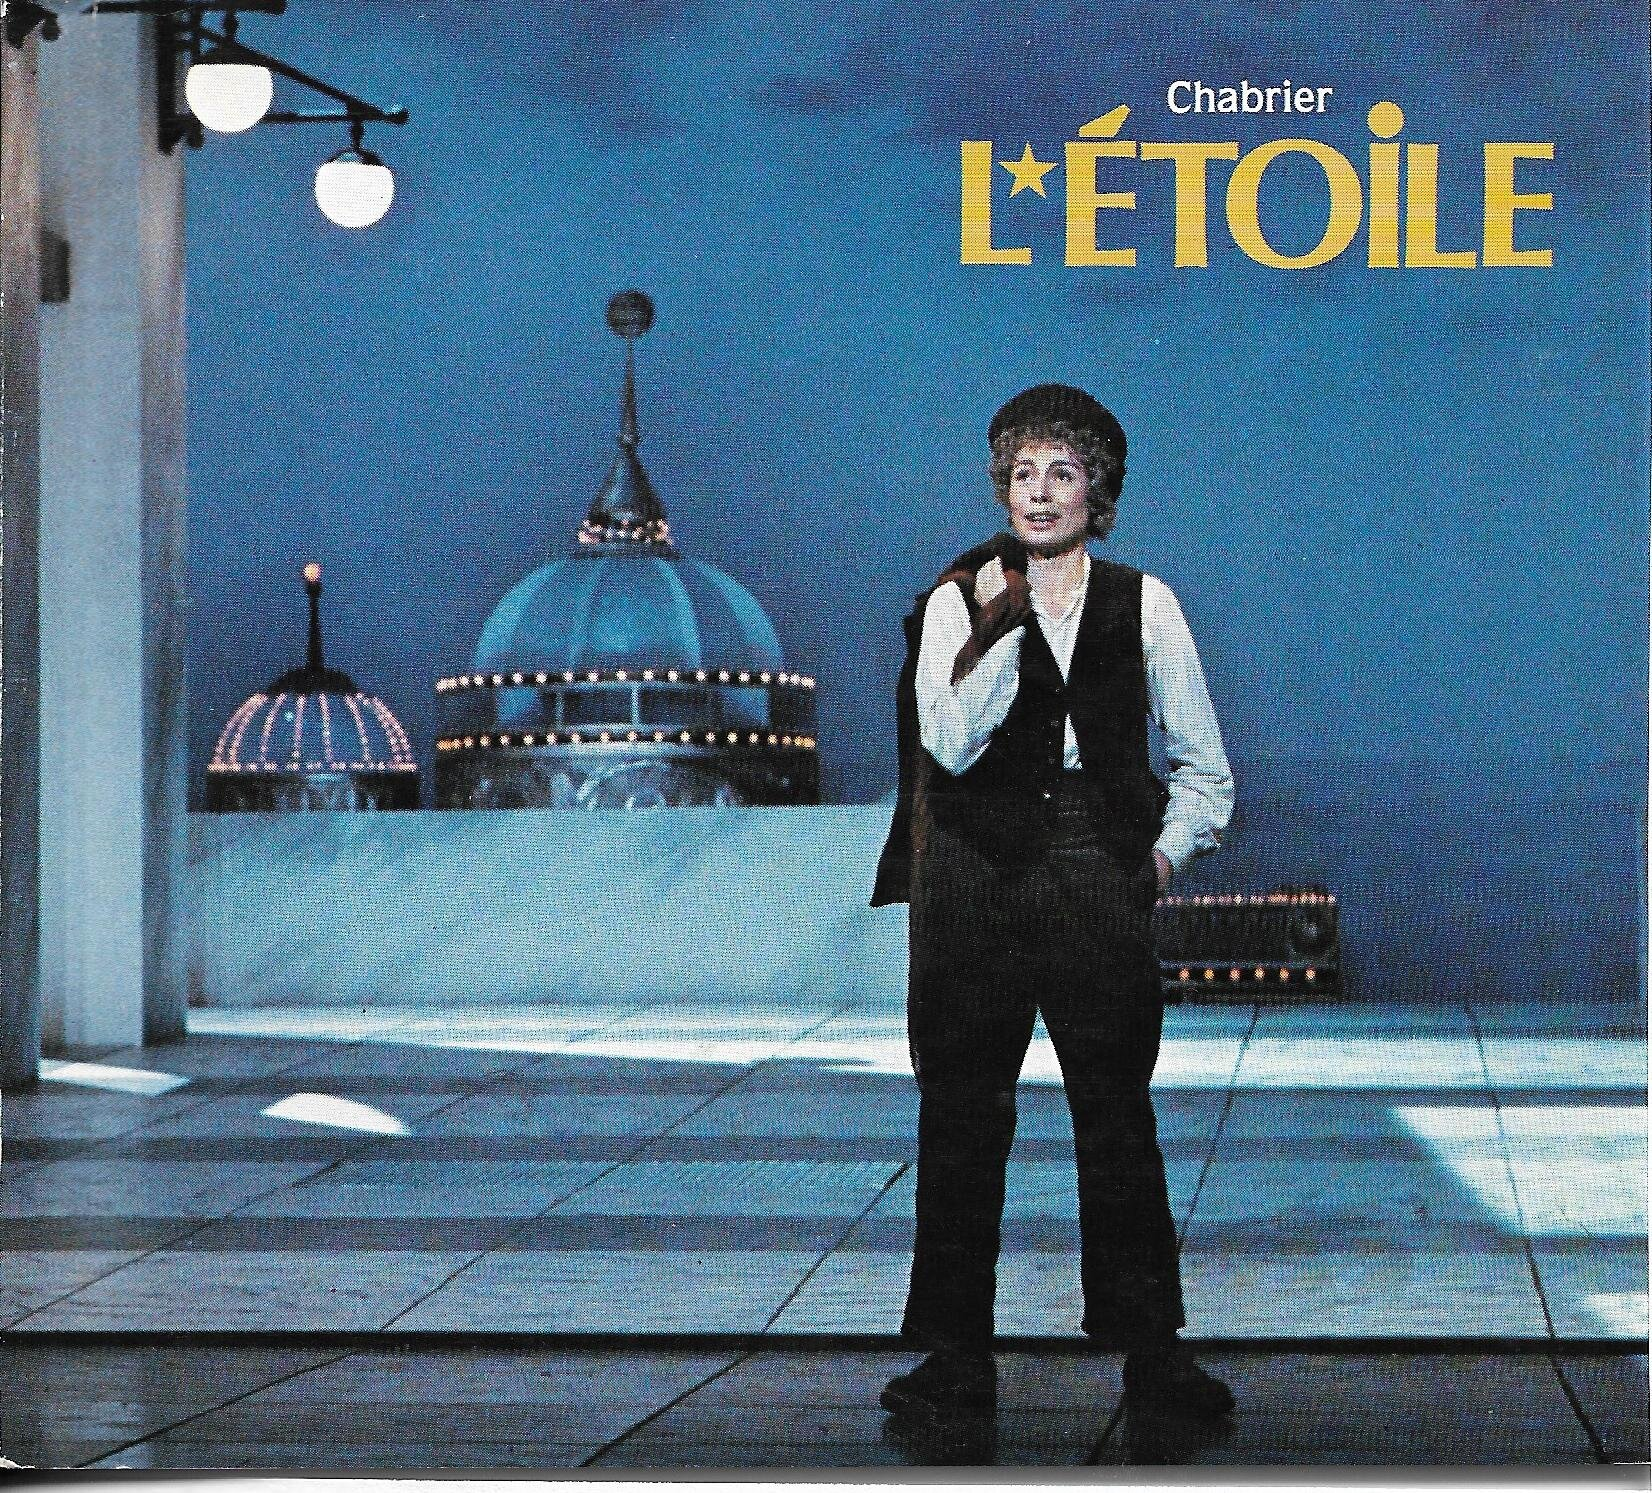 L'Etoile  from  Opéra National de Lyon  with Colette Alliot-Lugaz as Lazuli, conducted by John Eliot Gardiner